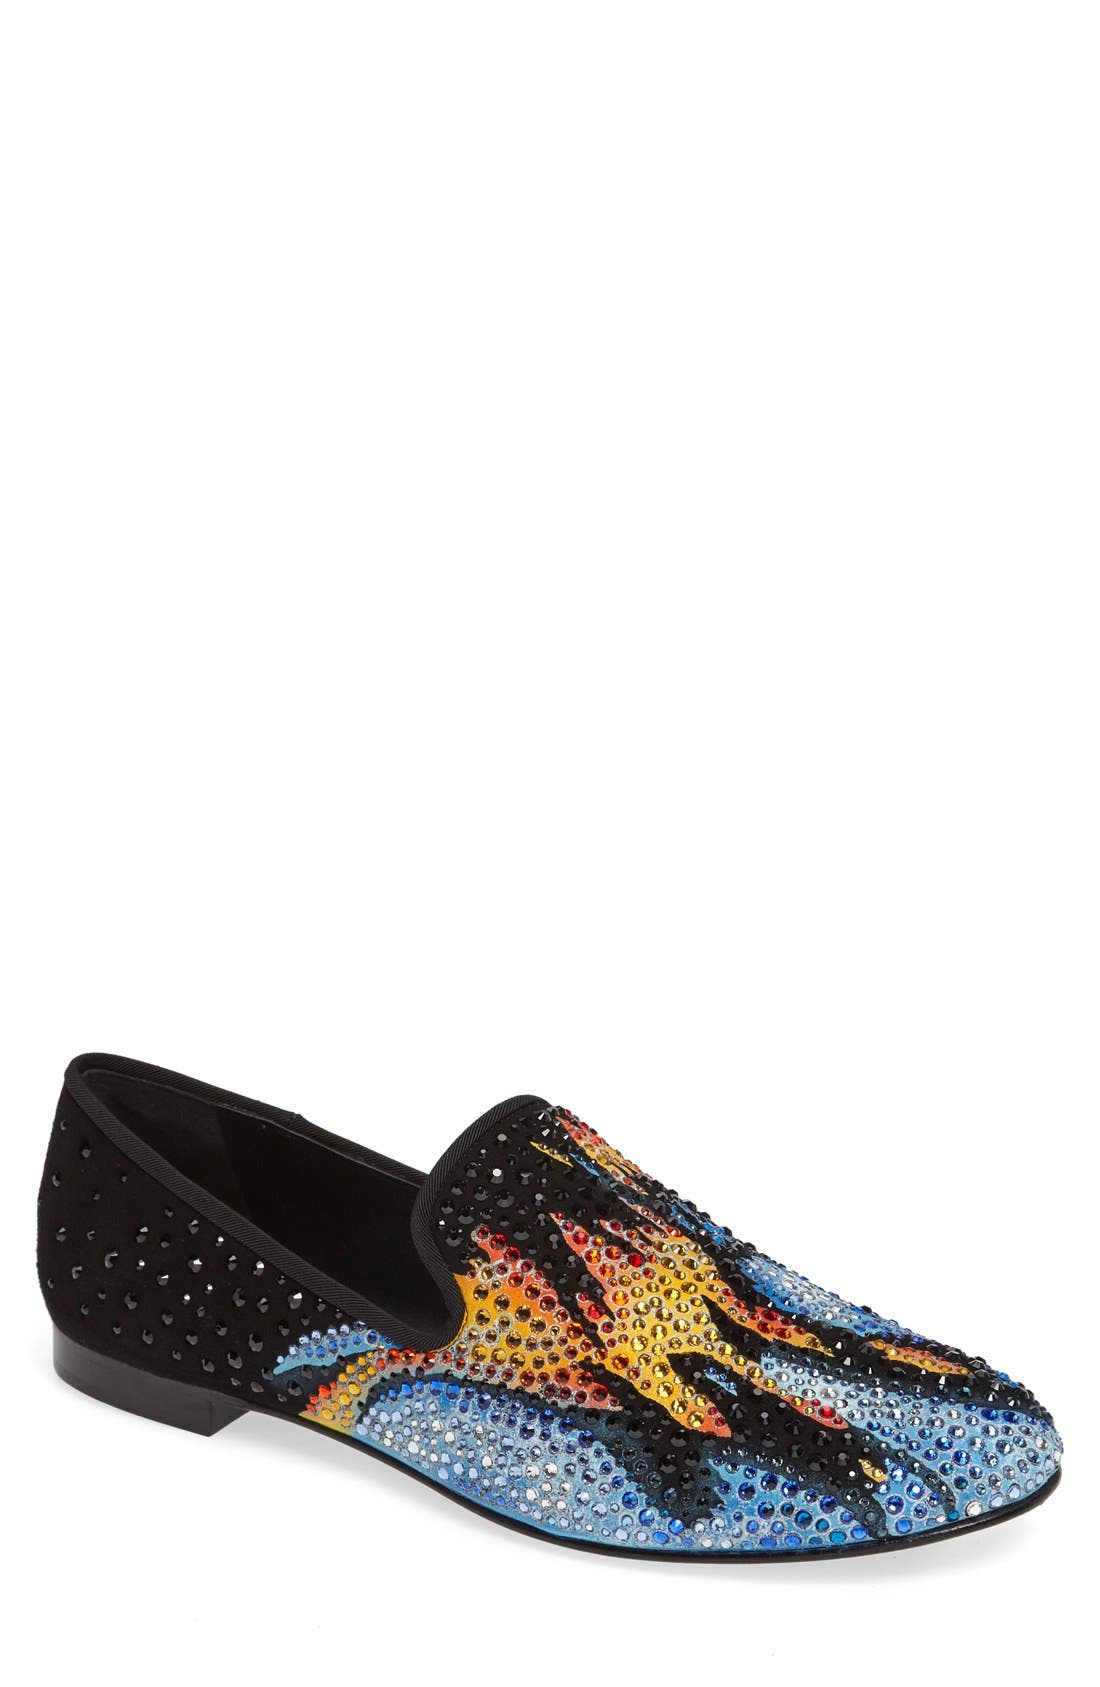 GIUSEPPE ZANOTTI Crystal Embellished Smoking Slipper